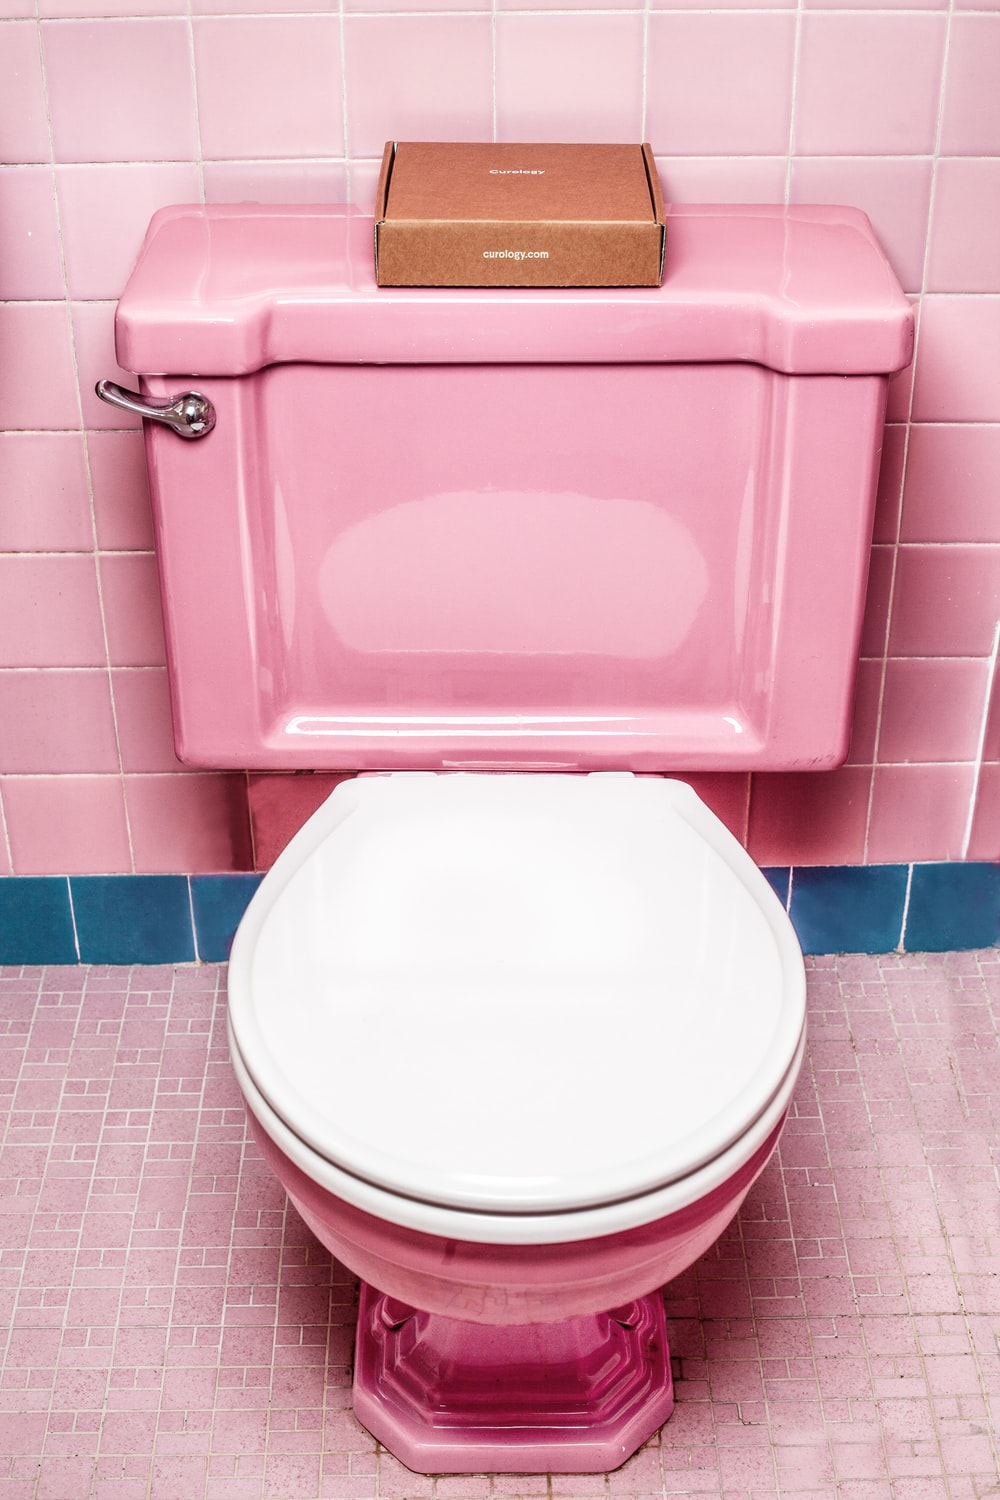 pink and white ceramic toilet bowl